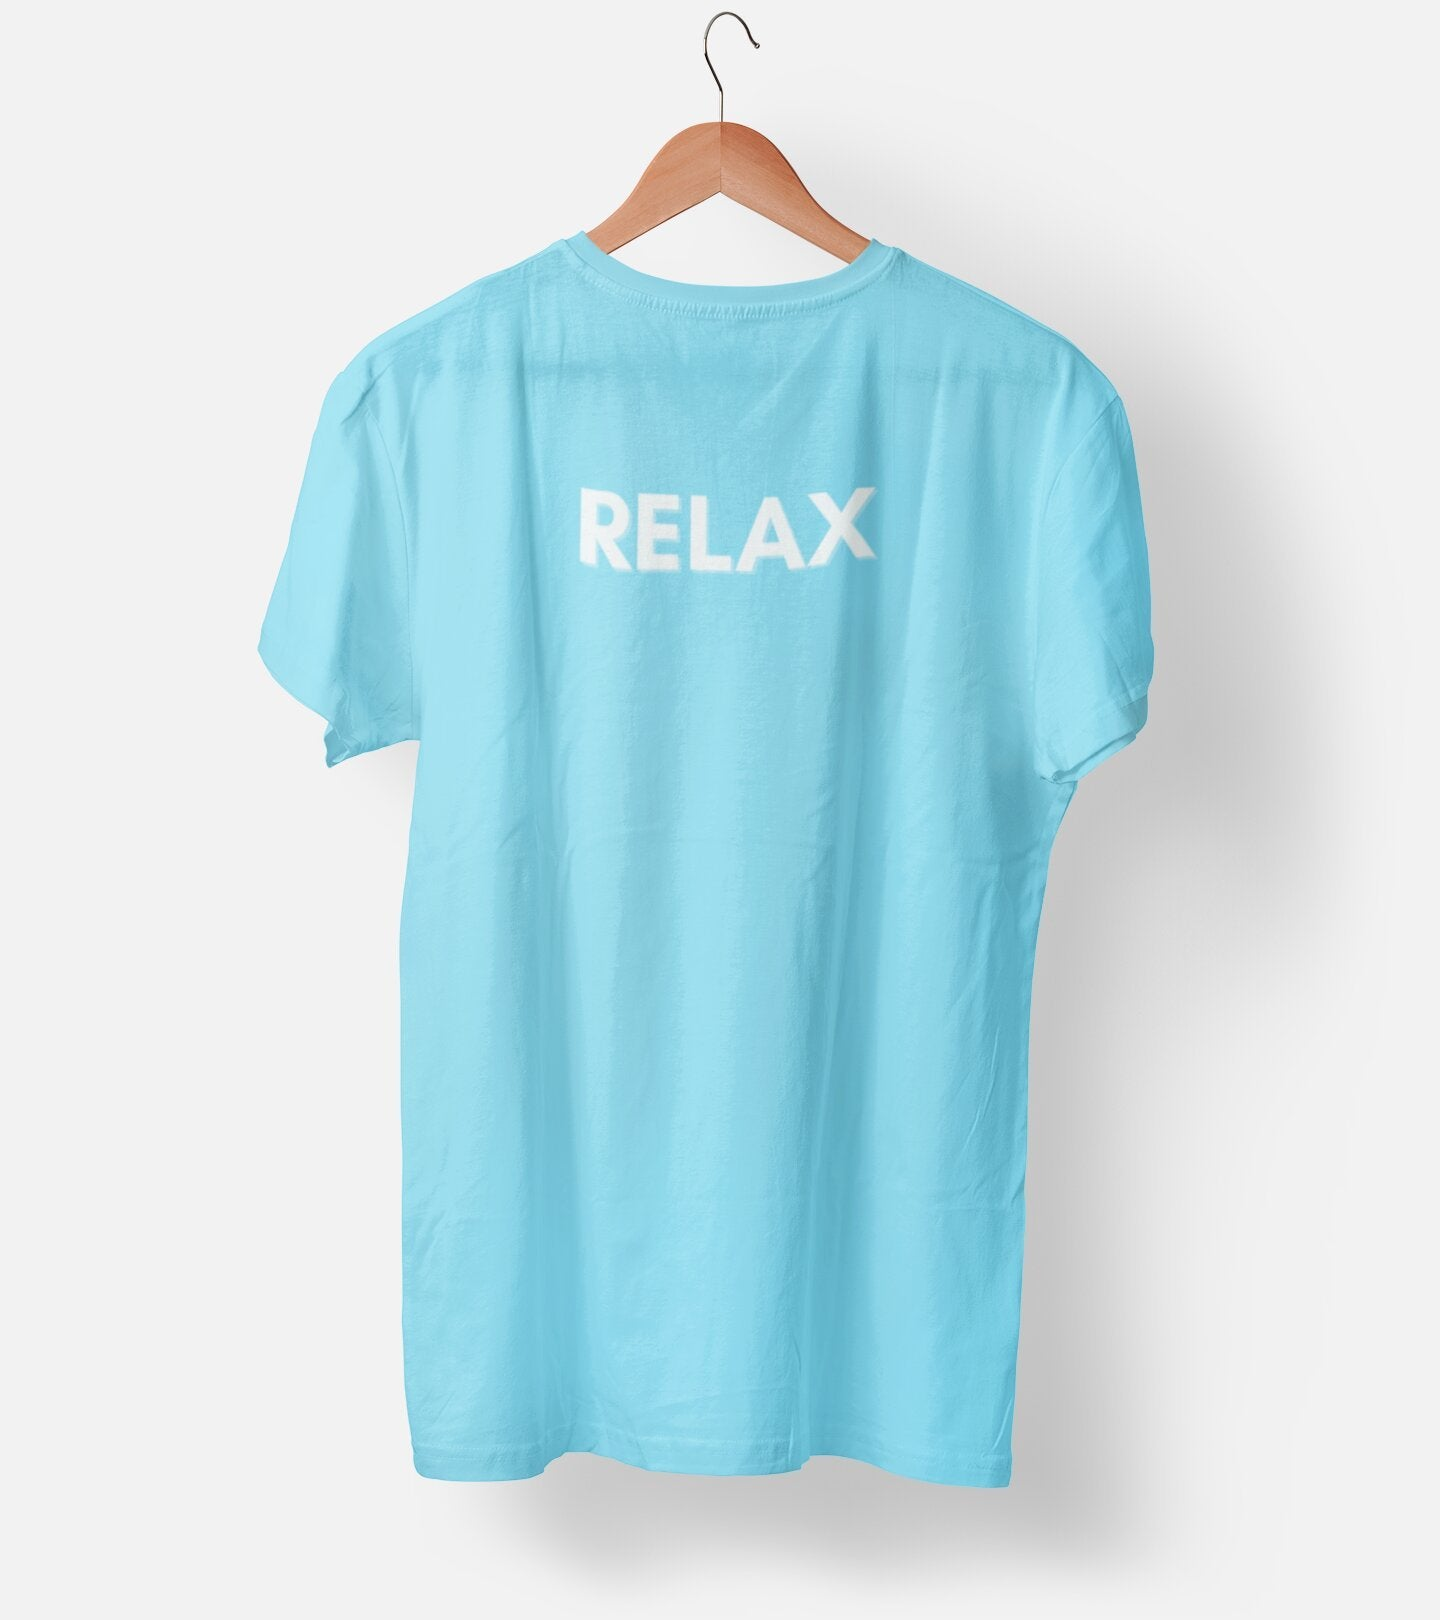 Relax Cool Blue Men's T-Shirt